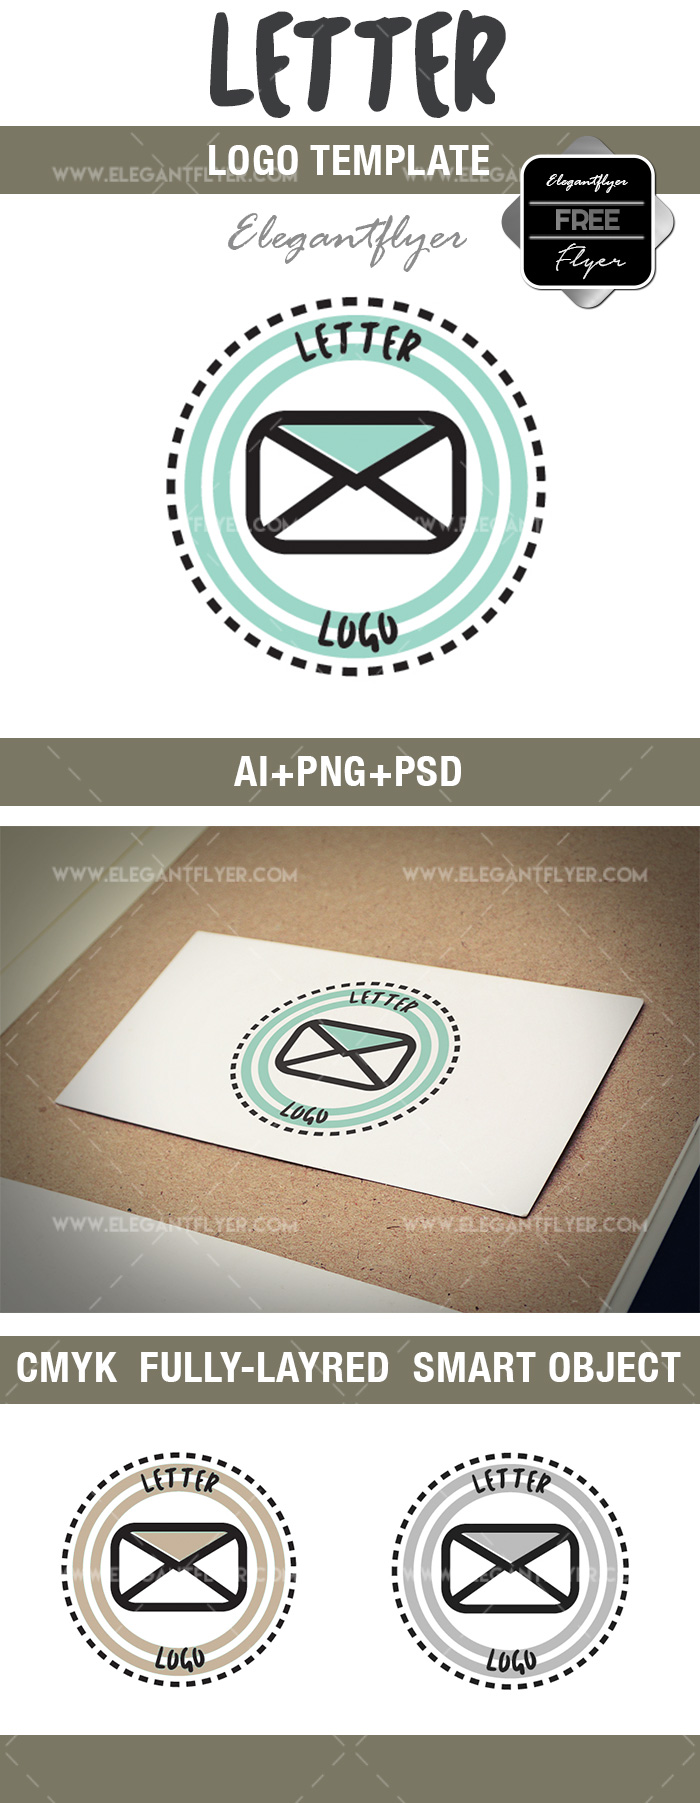 Letter – Free Logo Template